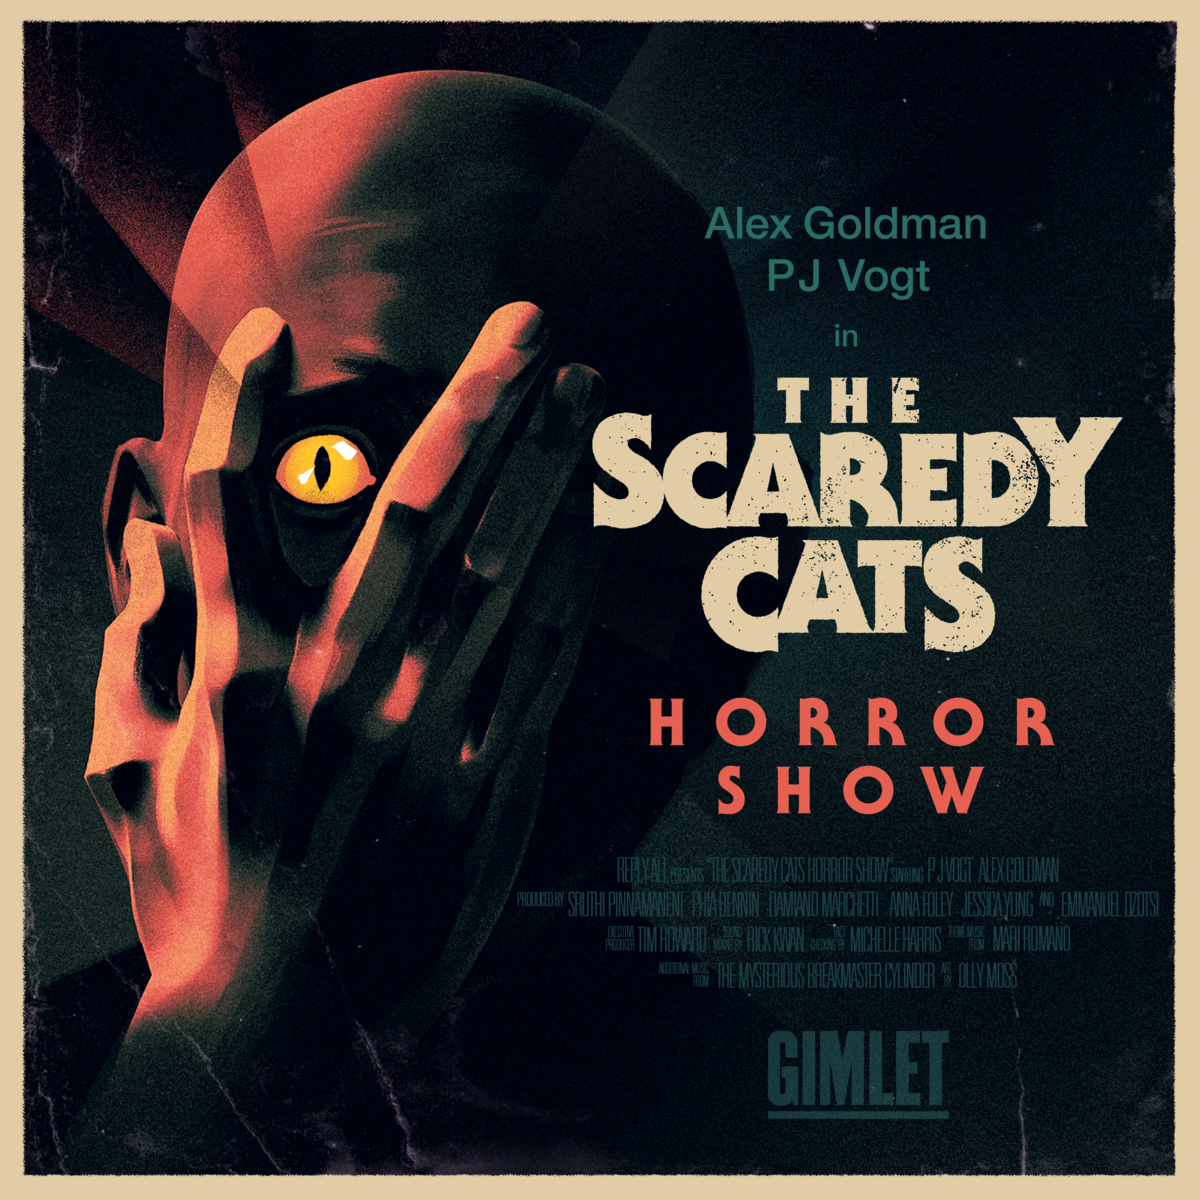 Thumbnail for The Scaredy Cats Horror Show